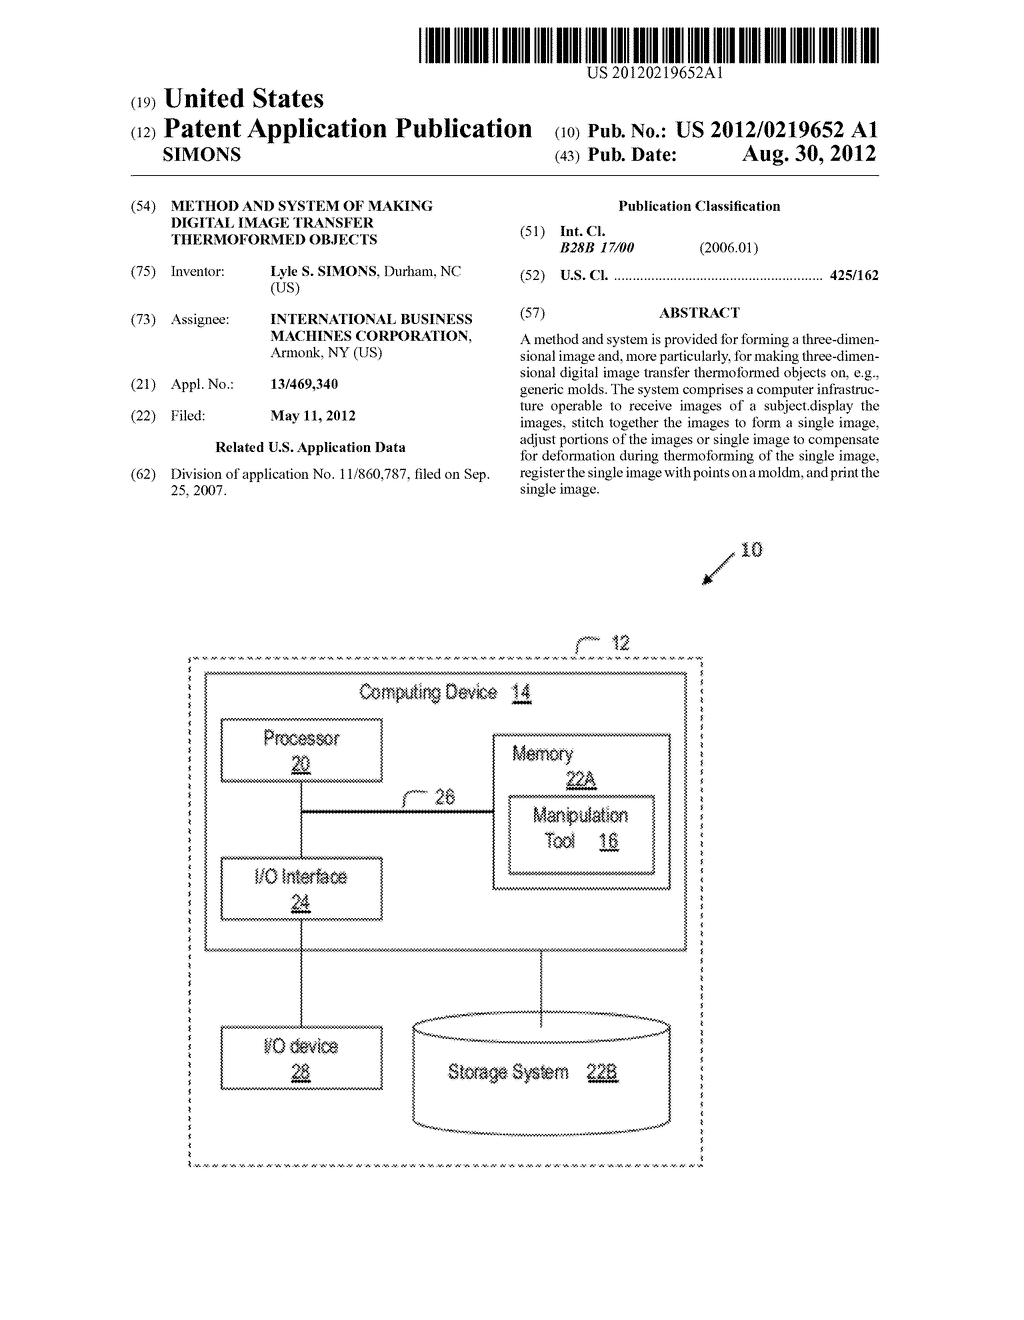 METHOD AND SYSTEM OF MAKING DIGITAL IMAGE TRANSFER THERMOFORMED OBJECTS - diagram, schematic, and image 01